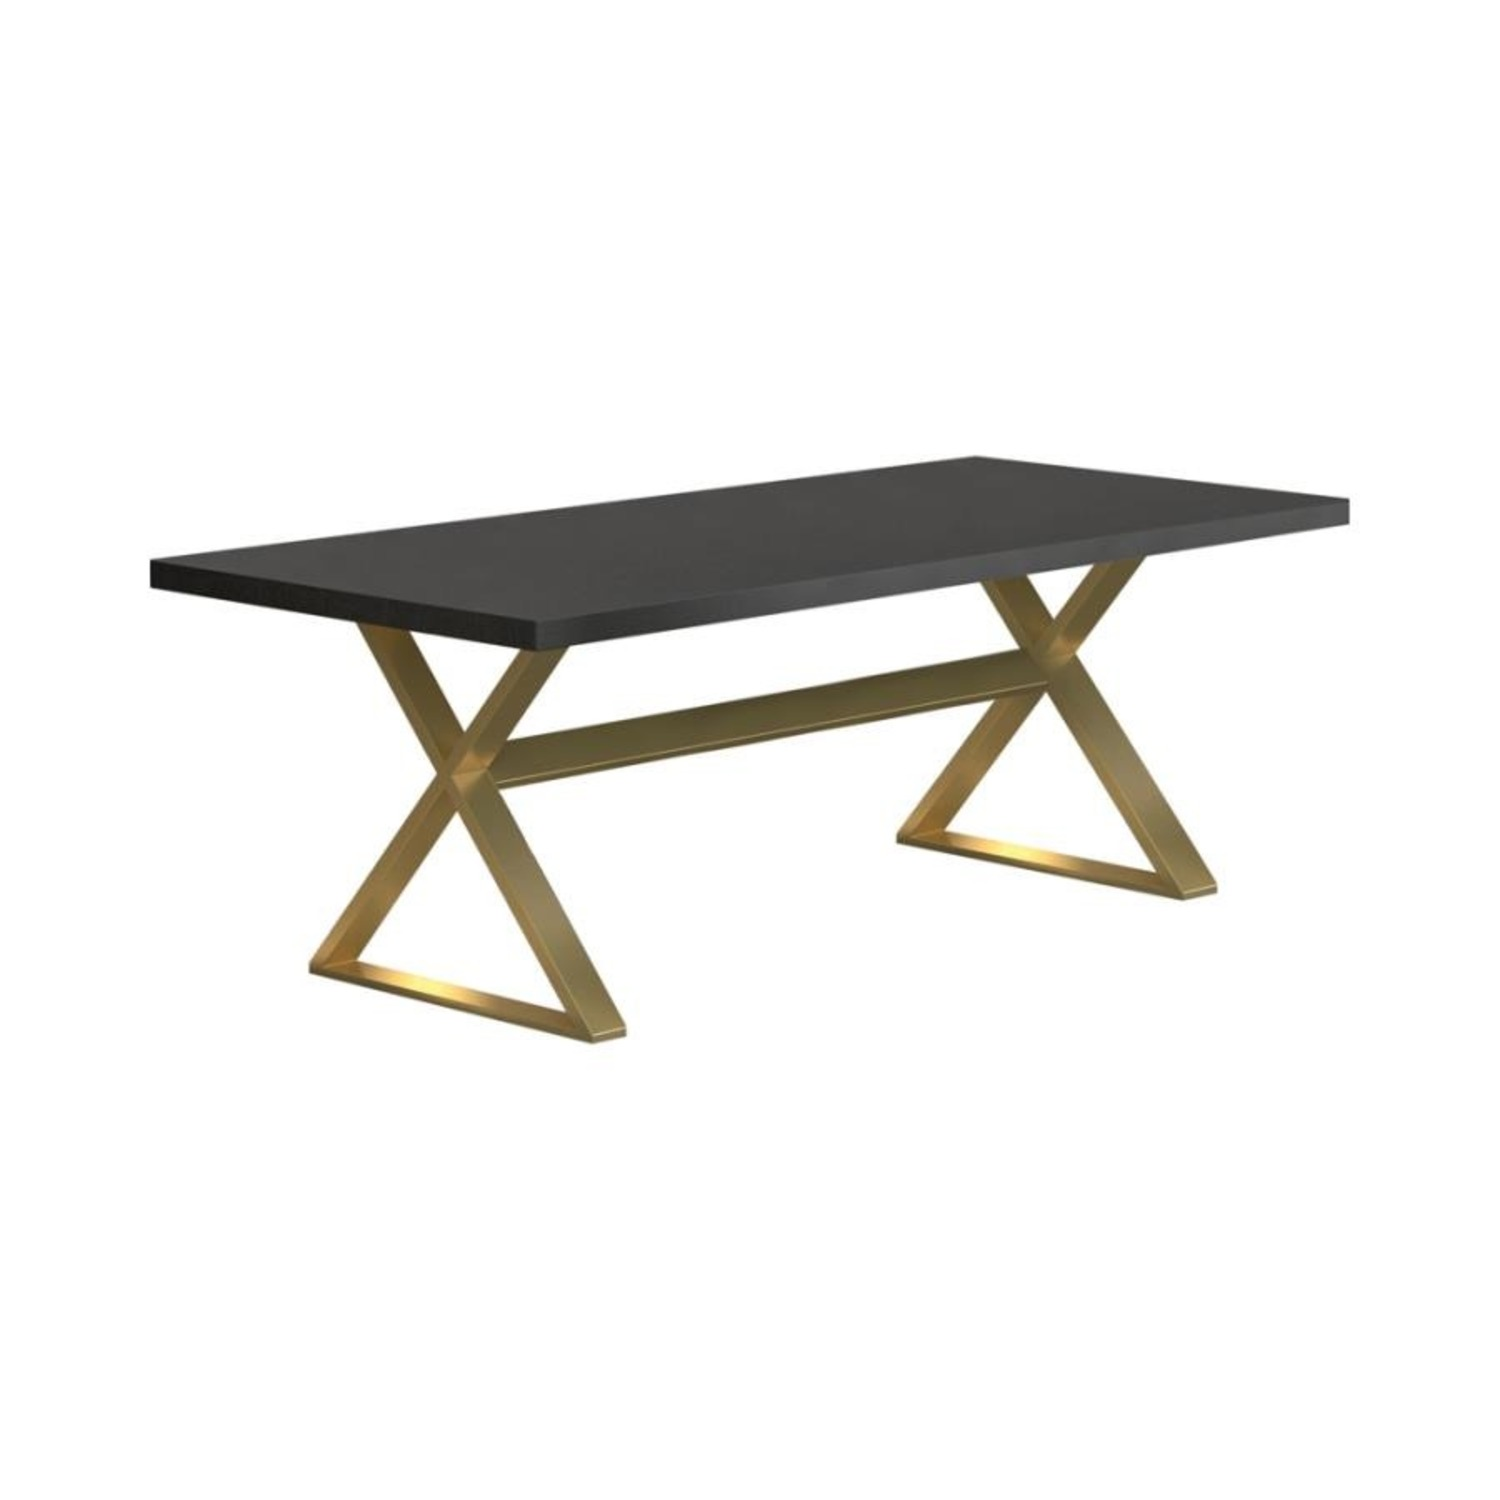 Dining Table In Dark Walnut W/ Aged Gold Base - image-0